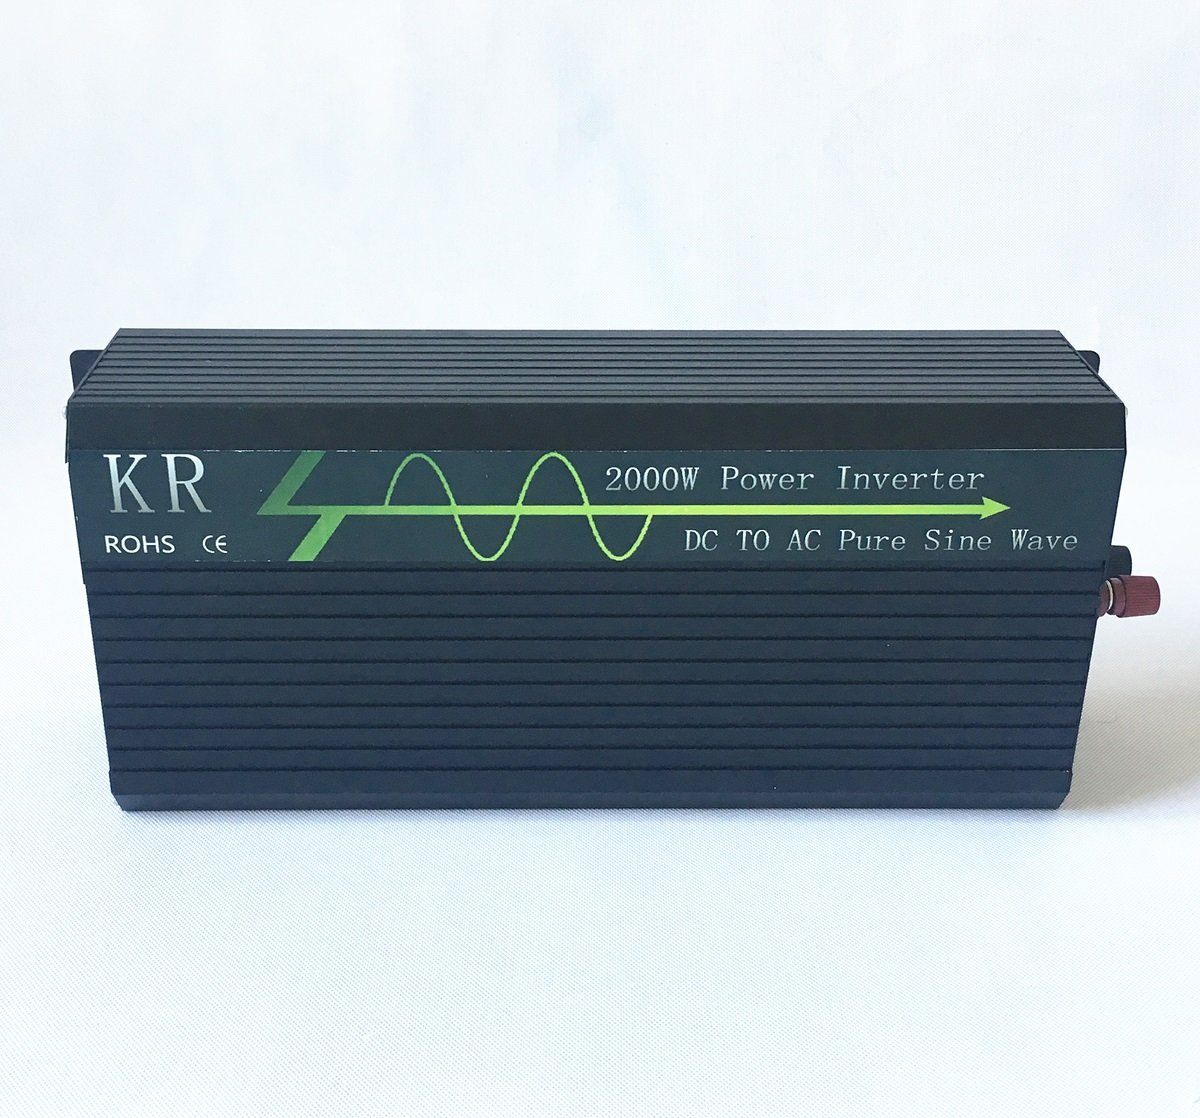 KRXNY Full 2000W Peak 4000W Off Grid Pure Sine Wave 12V DC to 120V AC 60HZ Power Inverter Converter for Home Car Use with LCD Display USB Port by KRXNY (Image #4)